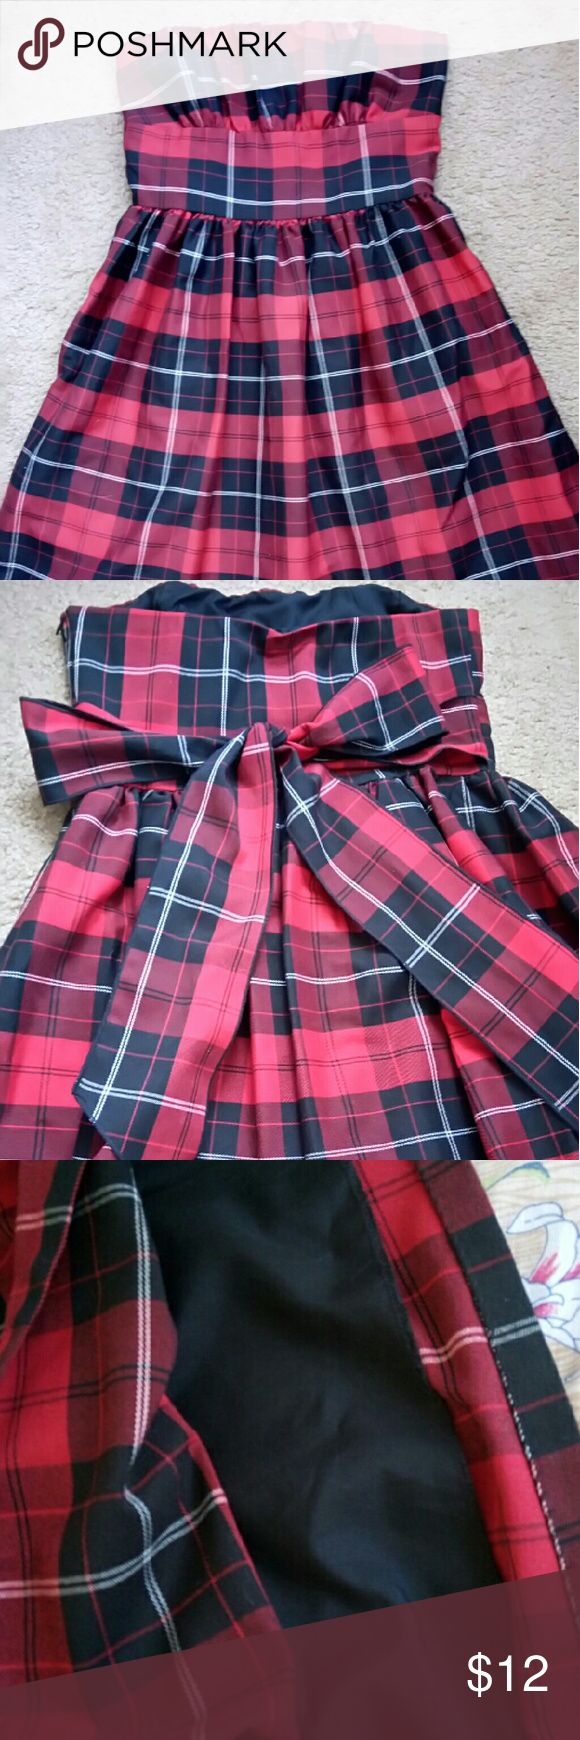 Scottish tartan strapless dress Re-poshing this lovely holiday dress because it was too snug on me.would better fit someone small with bra cup size b. Has a lovely bow at the back that can be tied to it fit better on your curves.  Has a side hidden zipper. Perfect for new years or any winter day. Ask for measurement or any other questions. Necessary Objects Dresses Midi